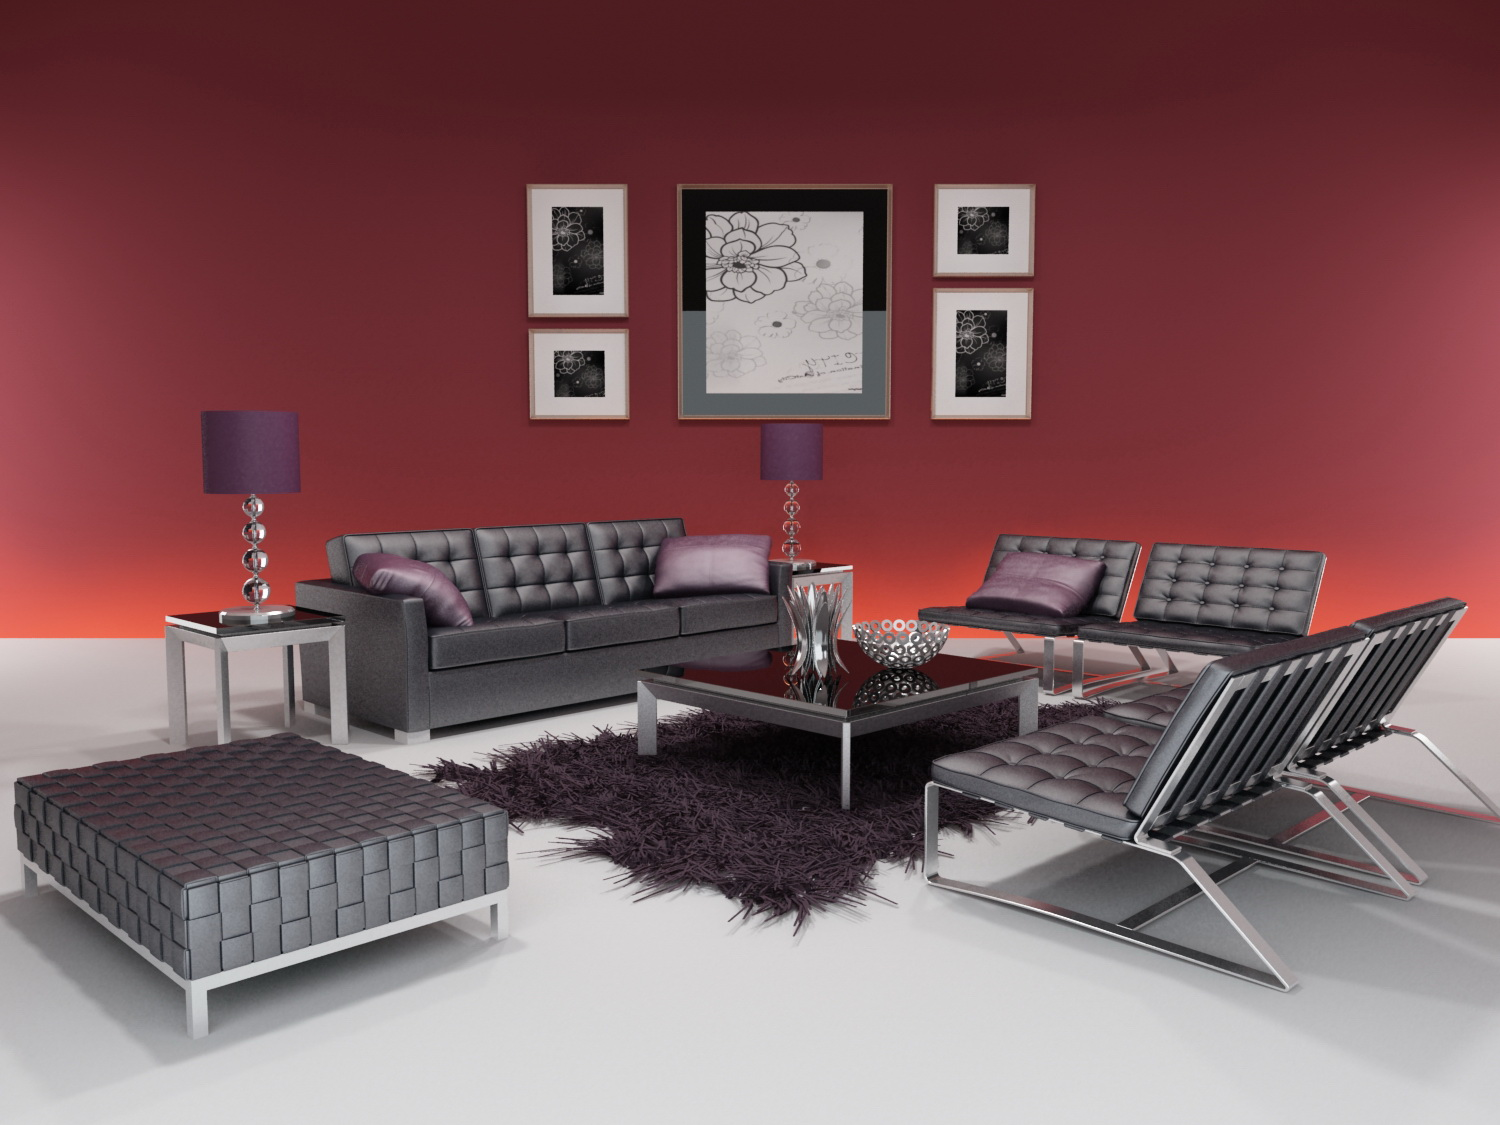 3D model of the whole furniture of modern style (including materials)